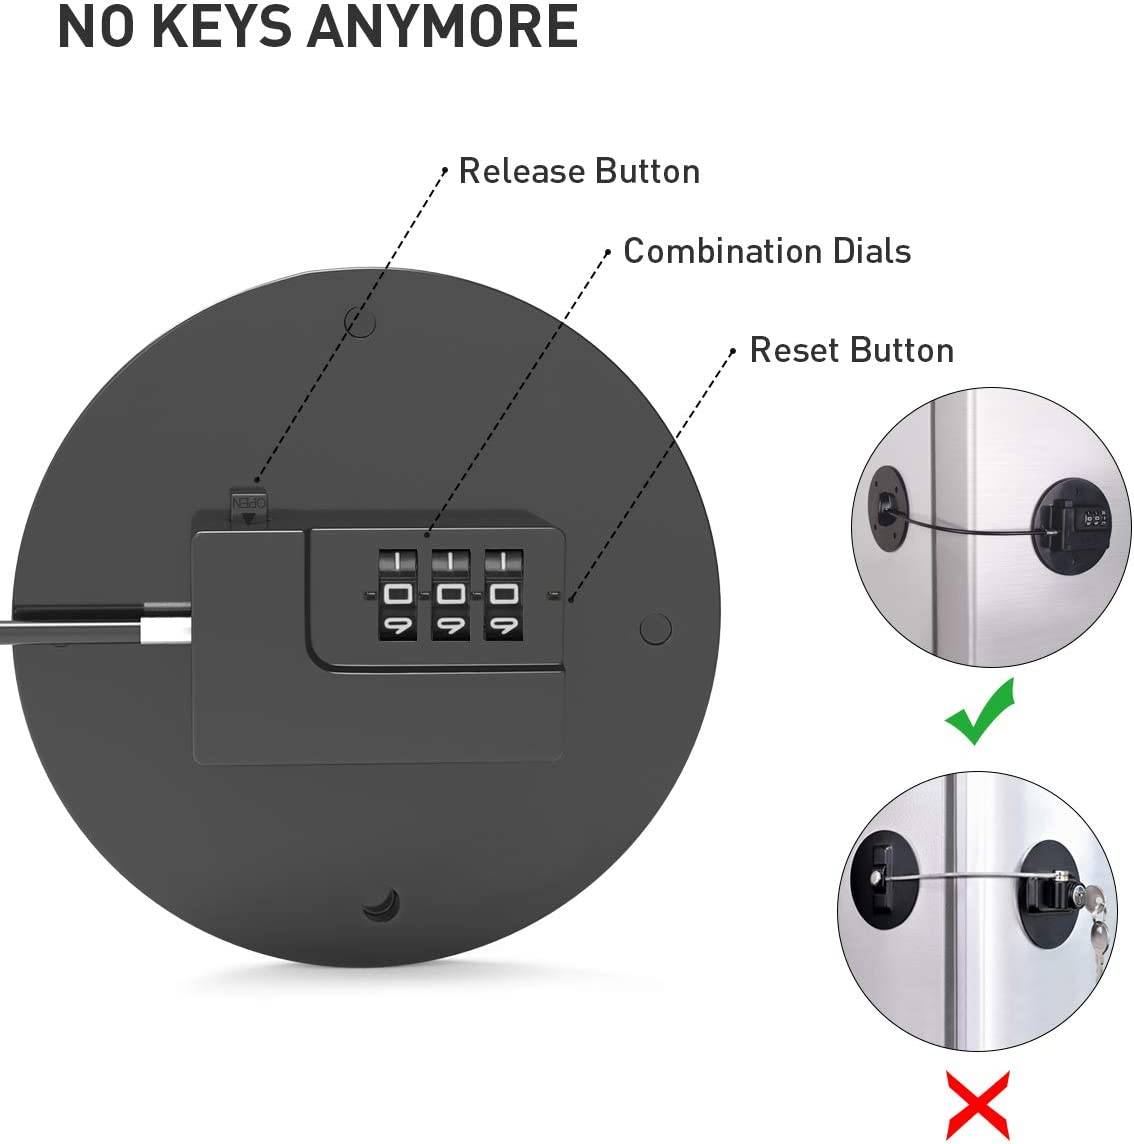 Childproof Fridge Lock with Combination Strong 3M Adhesives and Cable Upgraded Refrigerator Lock No Keys Anymore